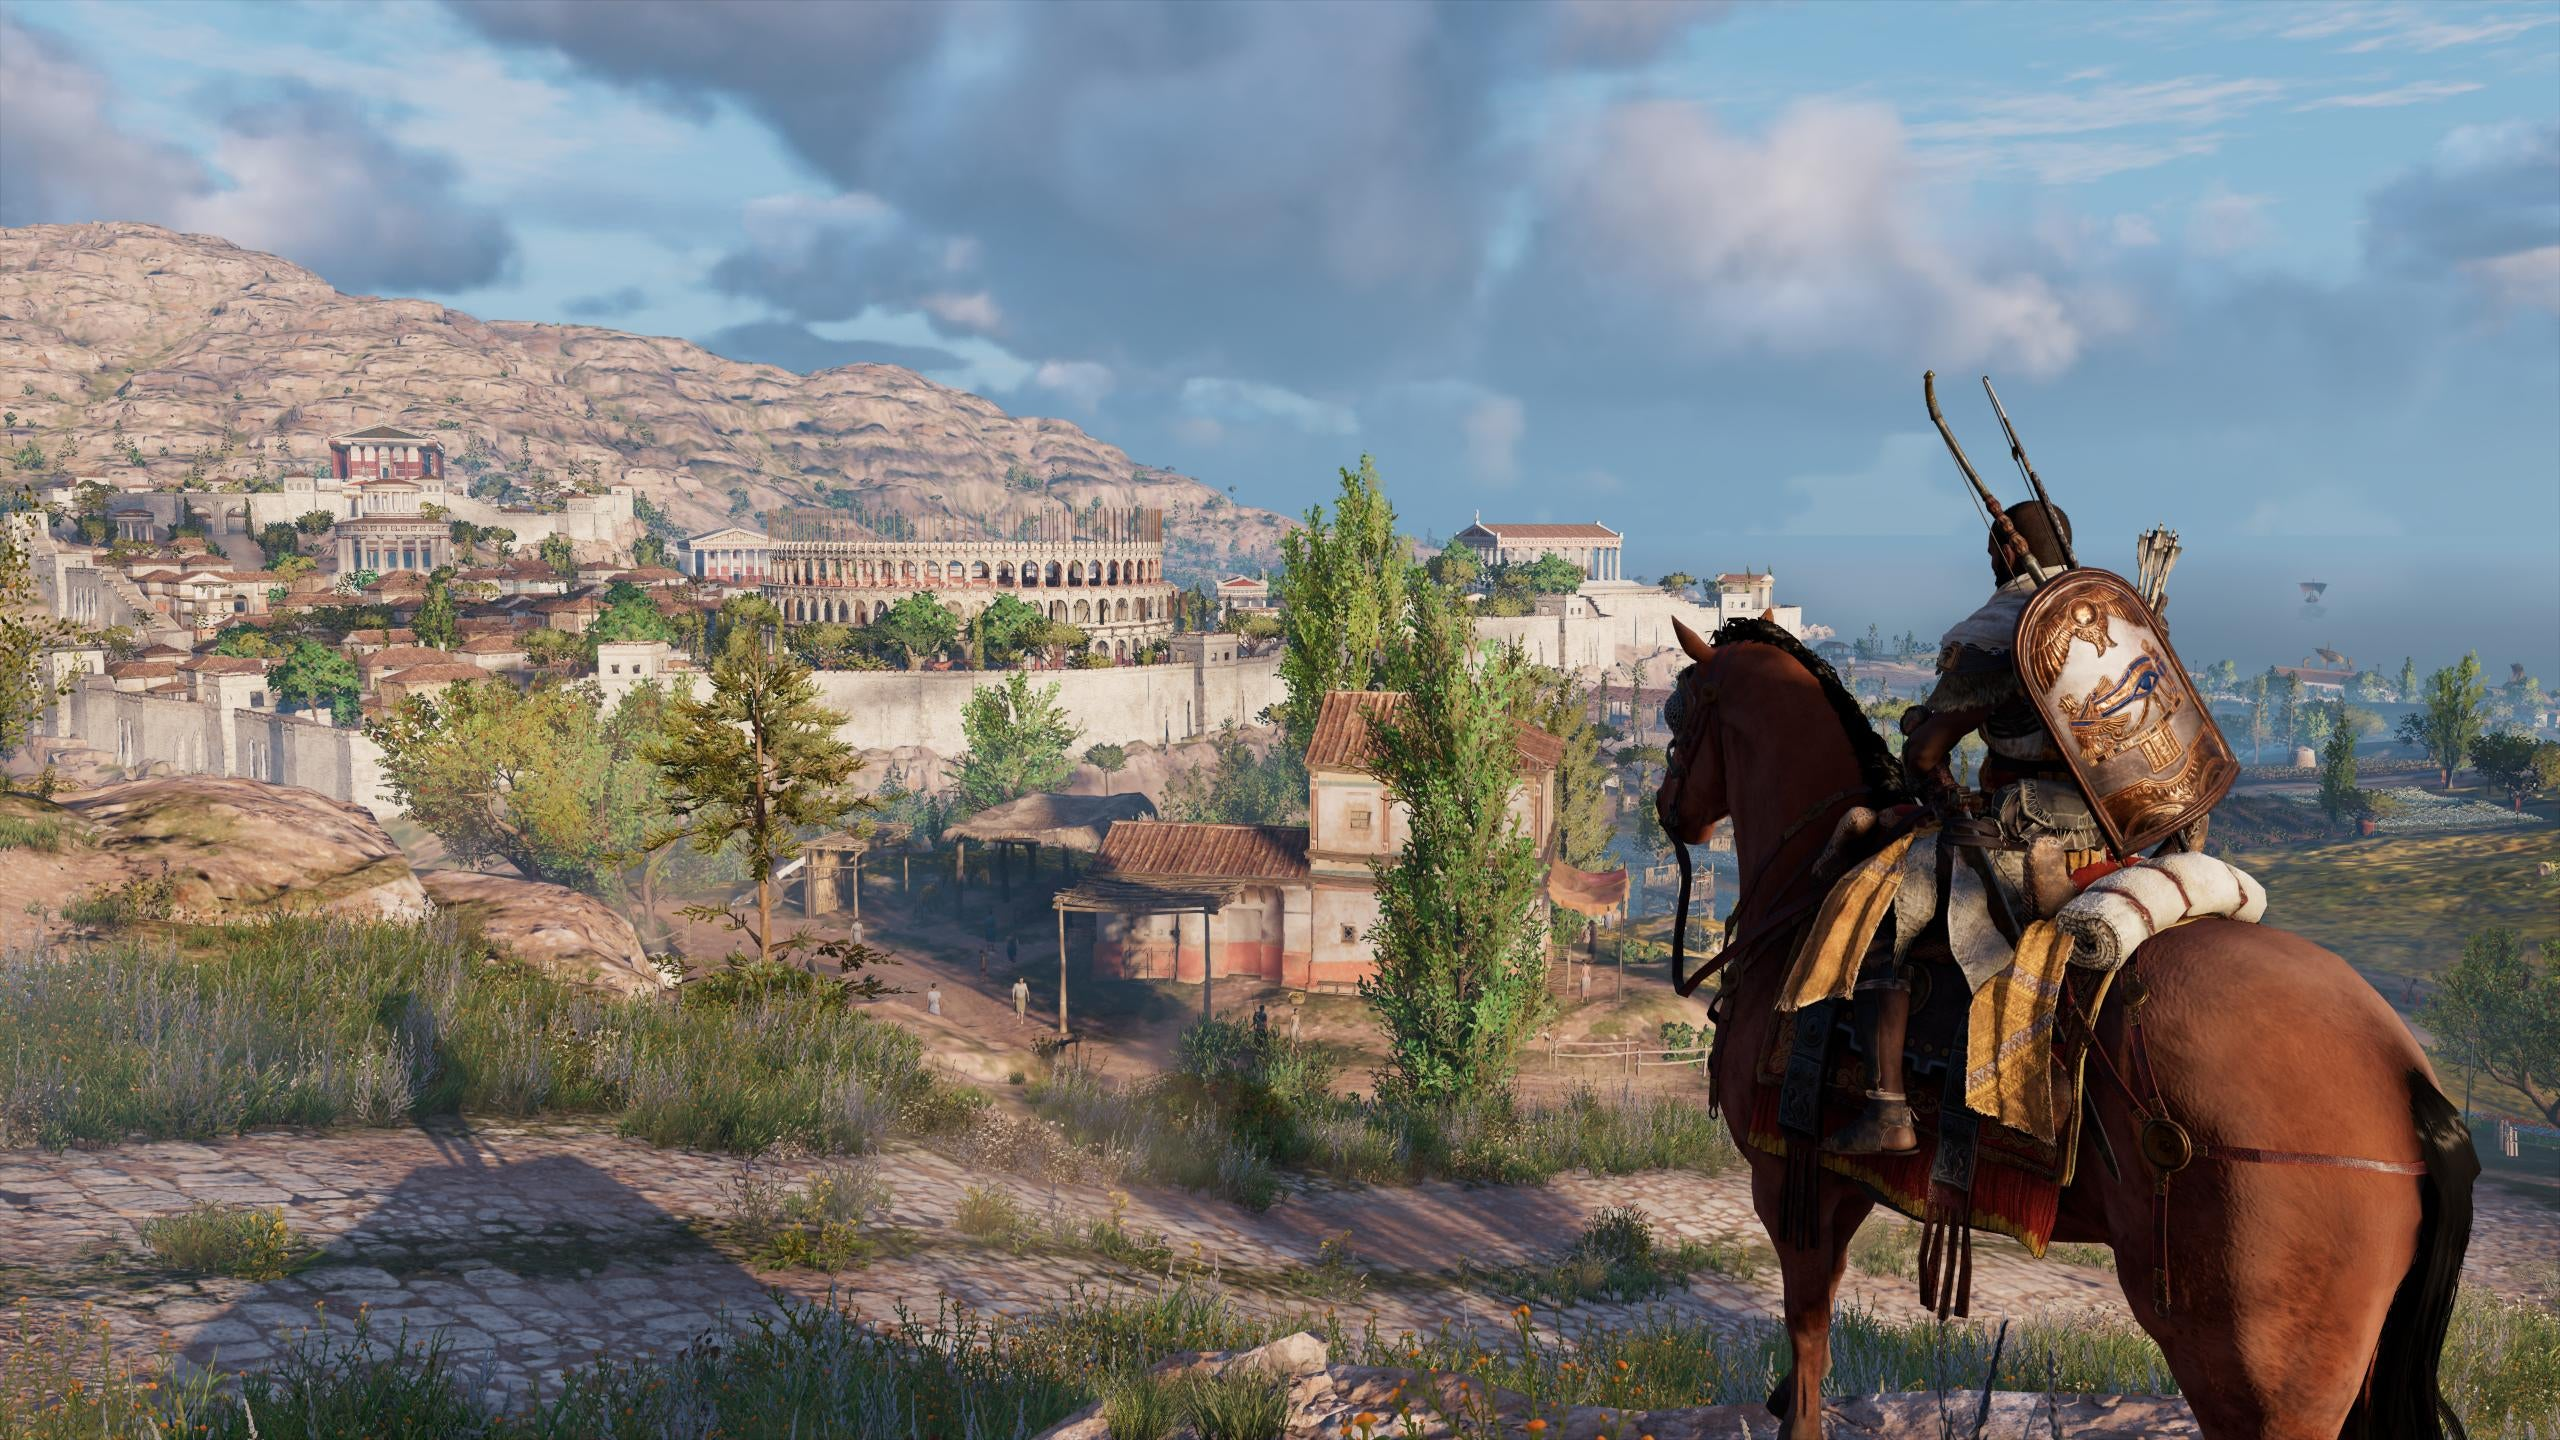 The Moment Assassin's Creed Origins Goes From Big To Ridiculously Big